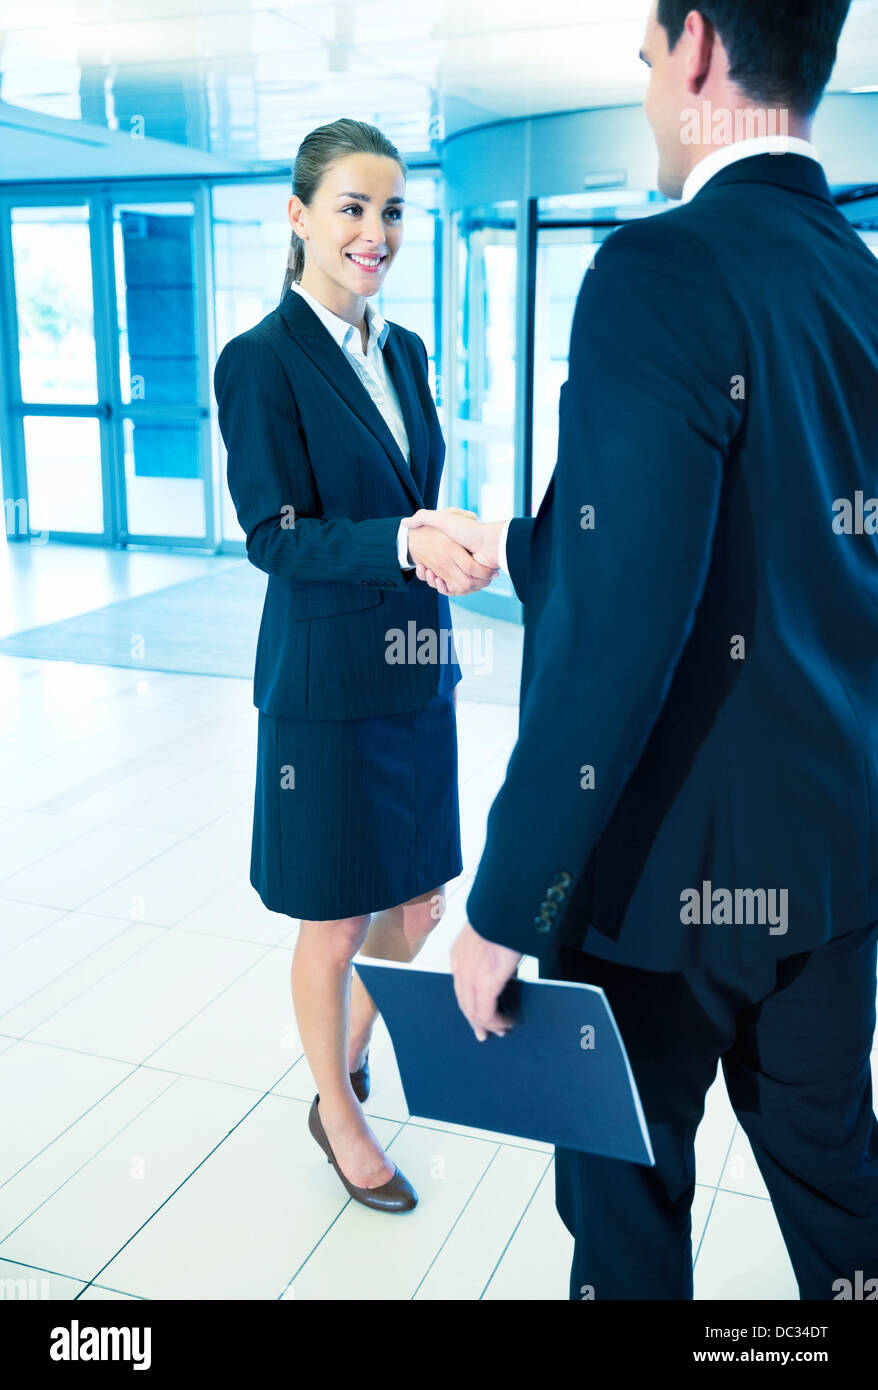 Smiling businessman and businesswoman handshaking in lobby - Stock Image